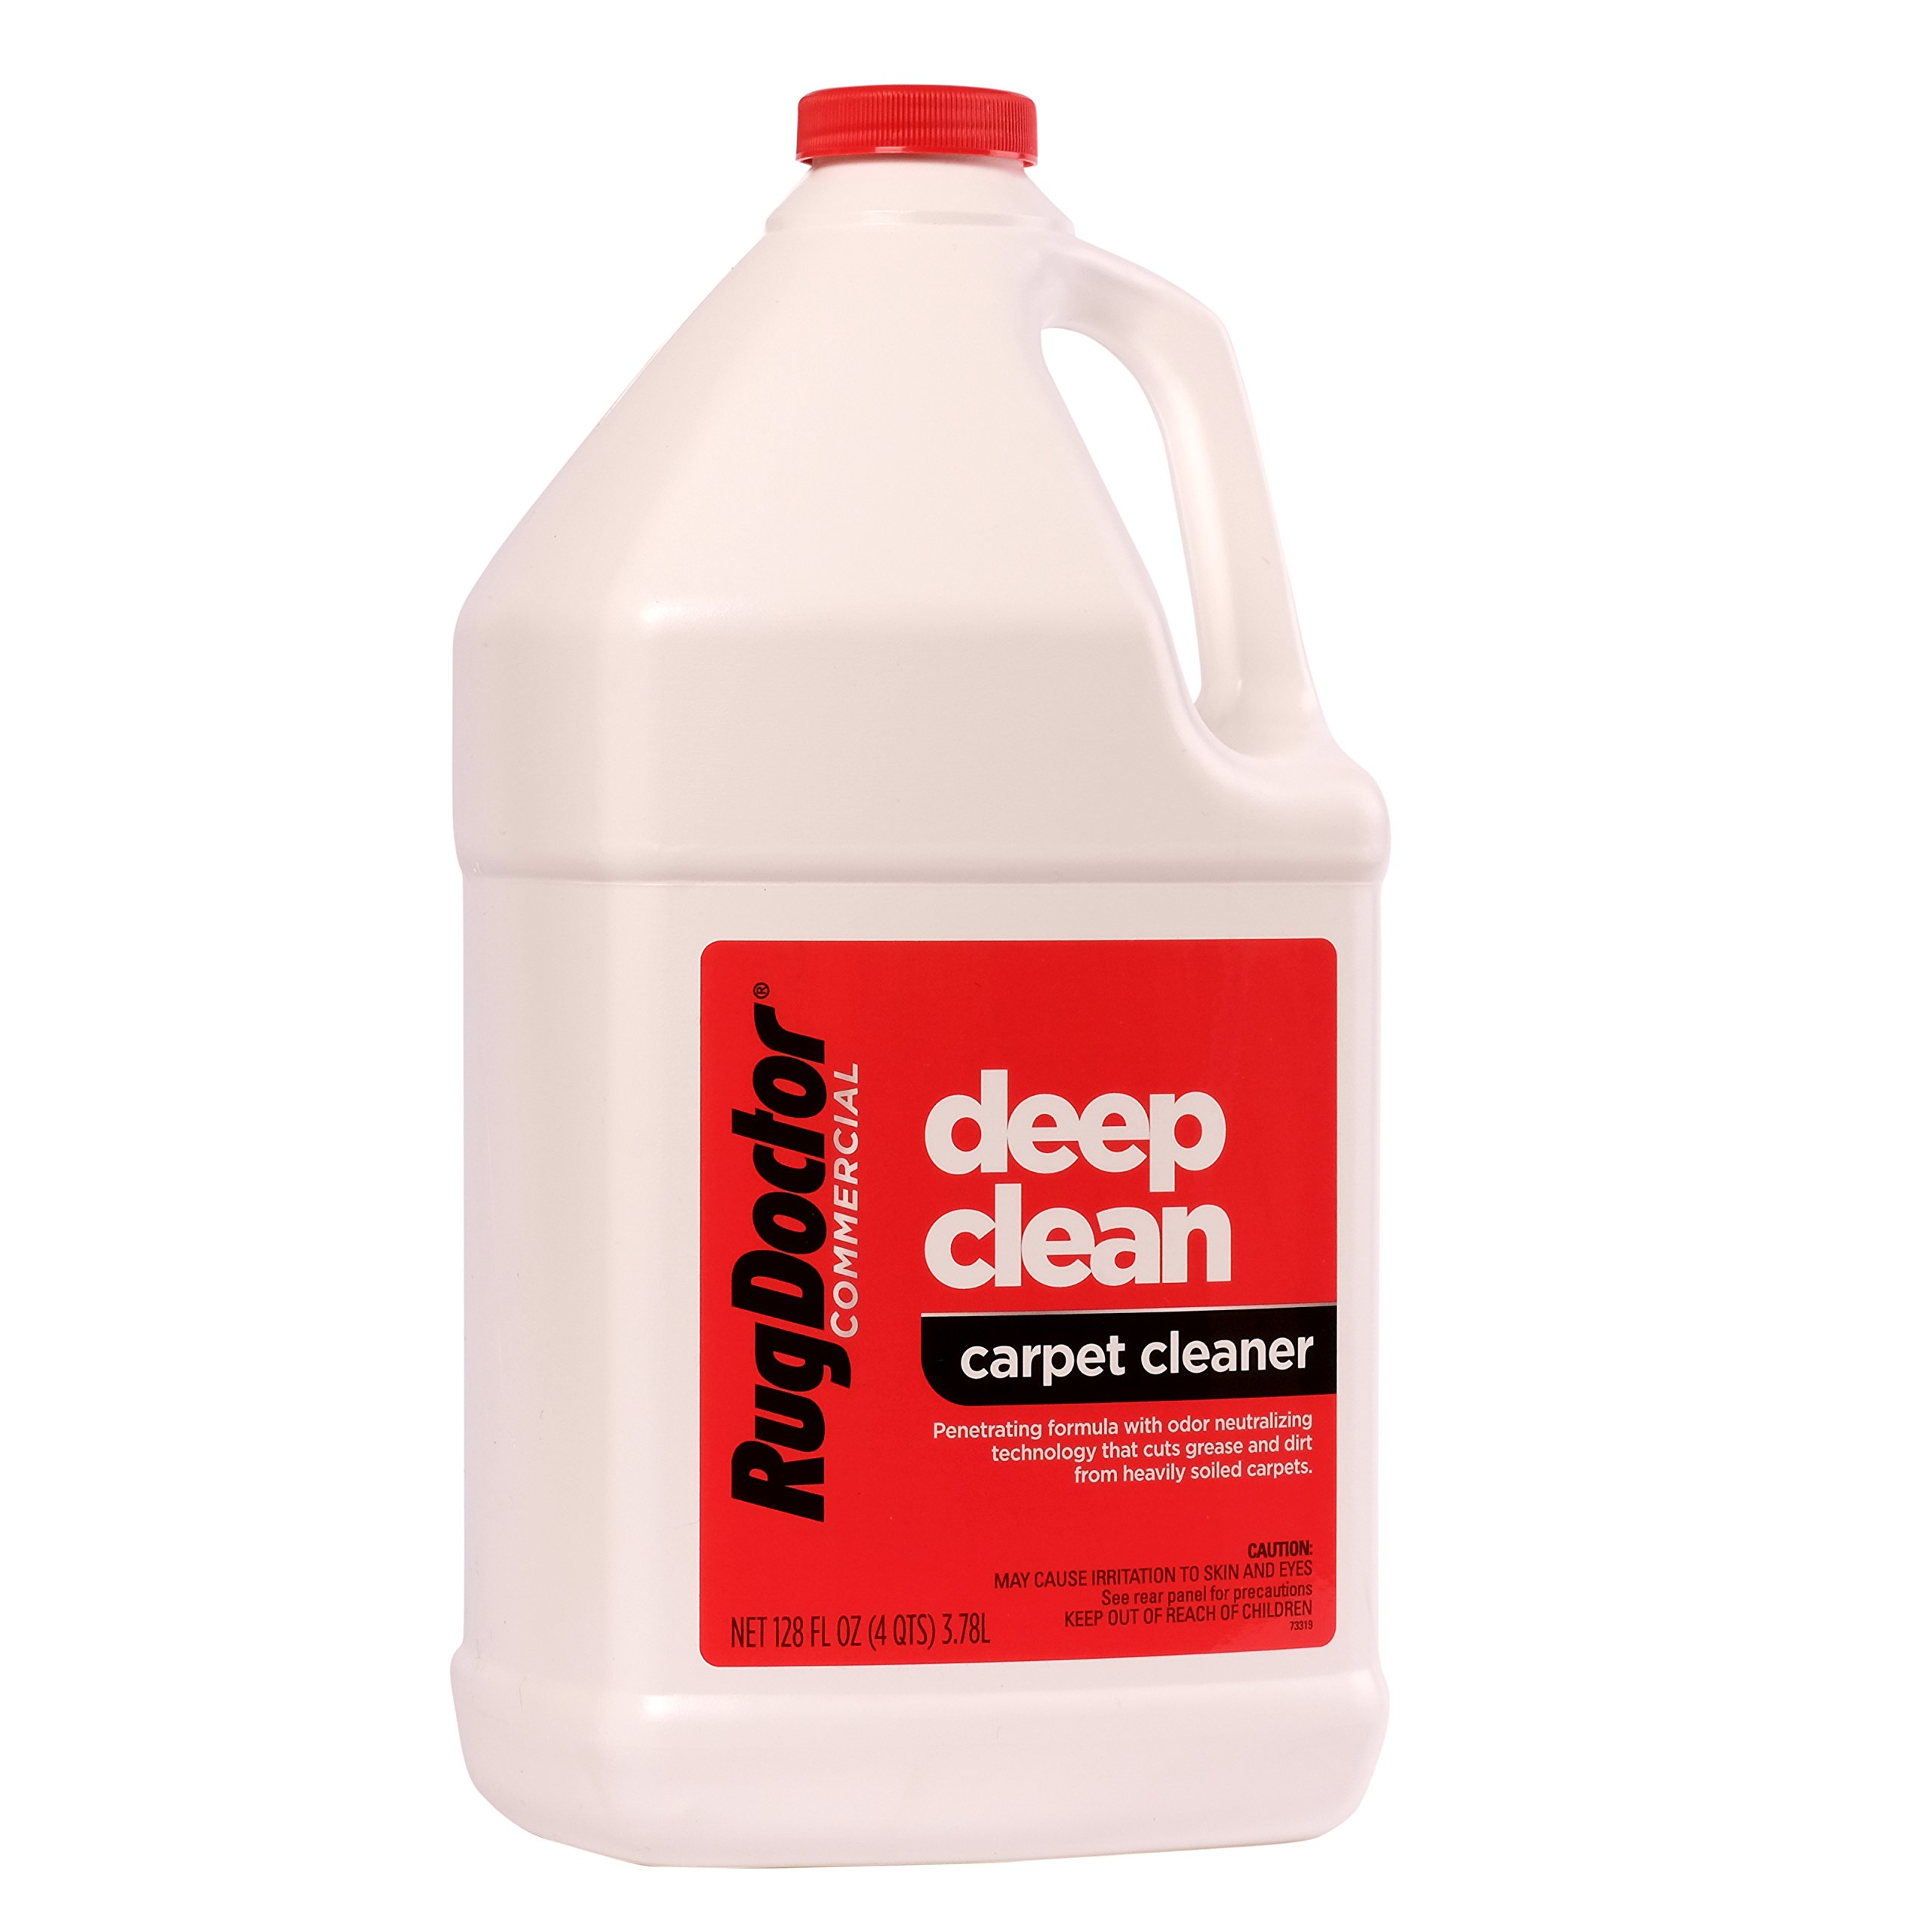 Rug Doctor Industrial Deep Carpet Cleaning Solution, Carpet Detergent for Removing Tough Stains and Stubborn Dirt, Great for Home and Office, 128 oz. by Rug Doctor